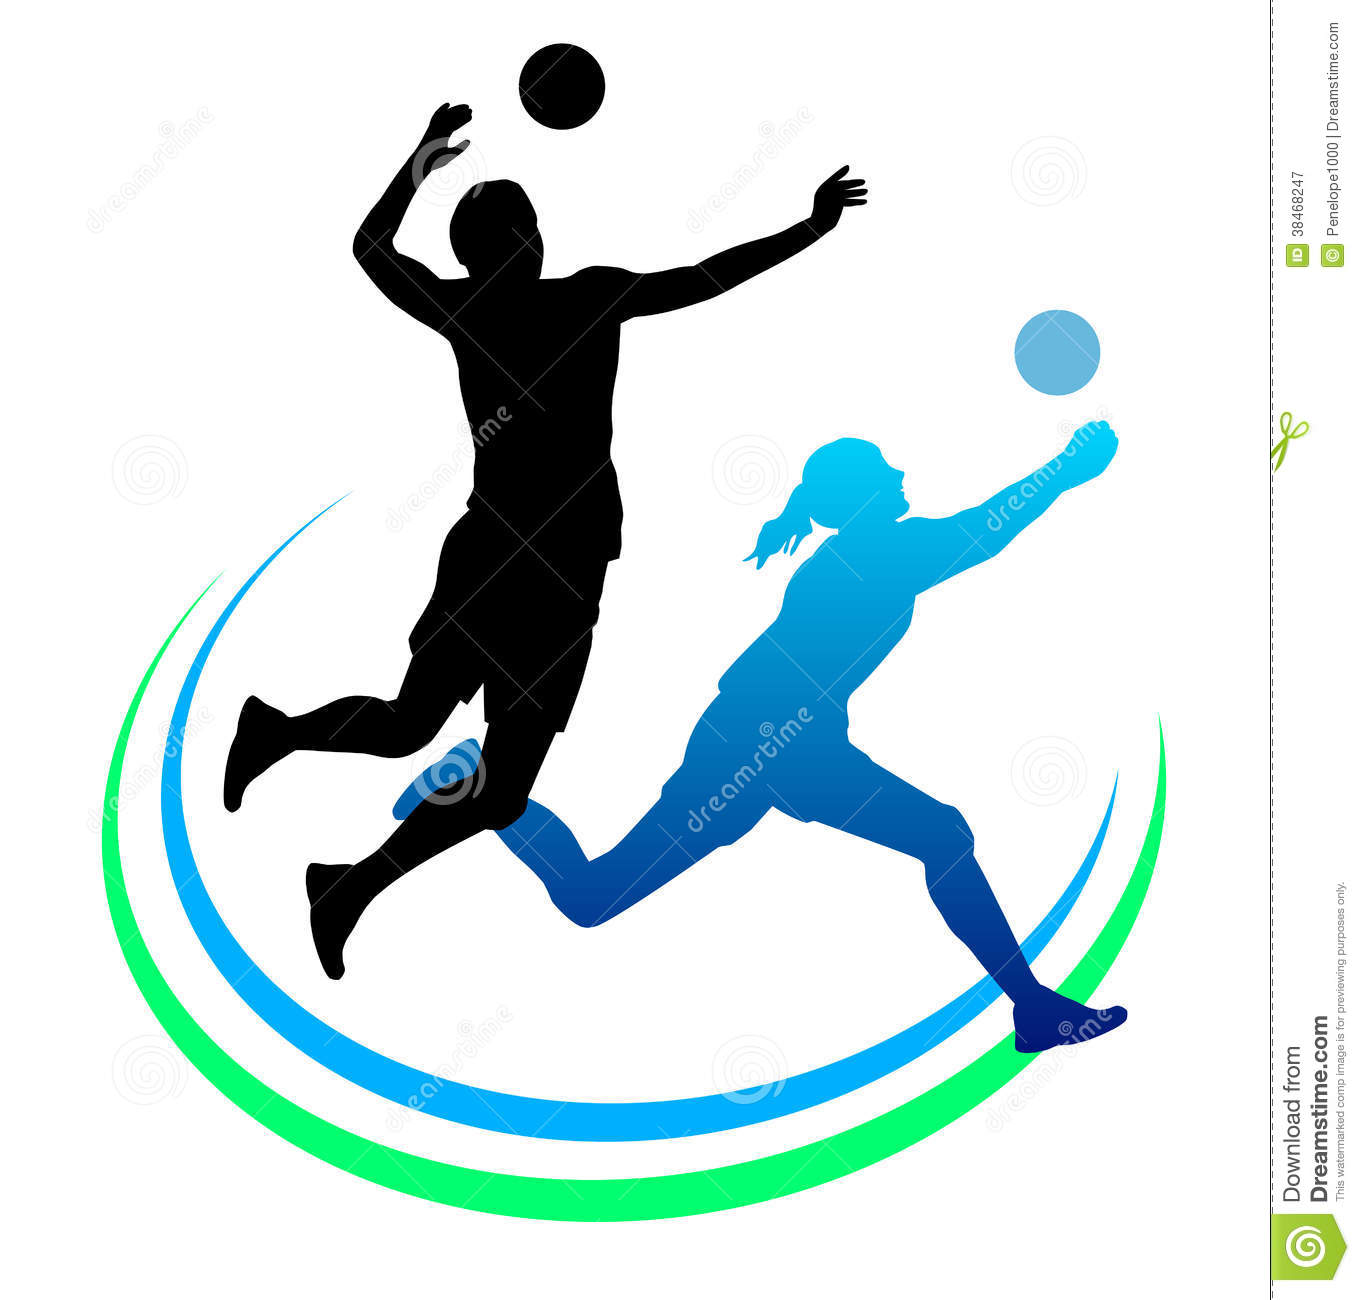 Volleyball - 5 Royalty Free Stock Photography - Image: 38468247